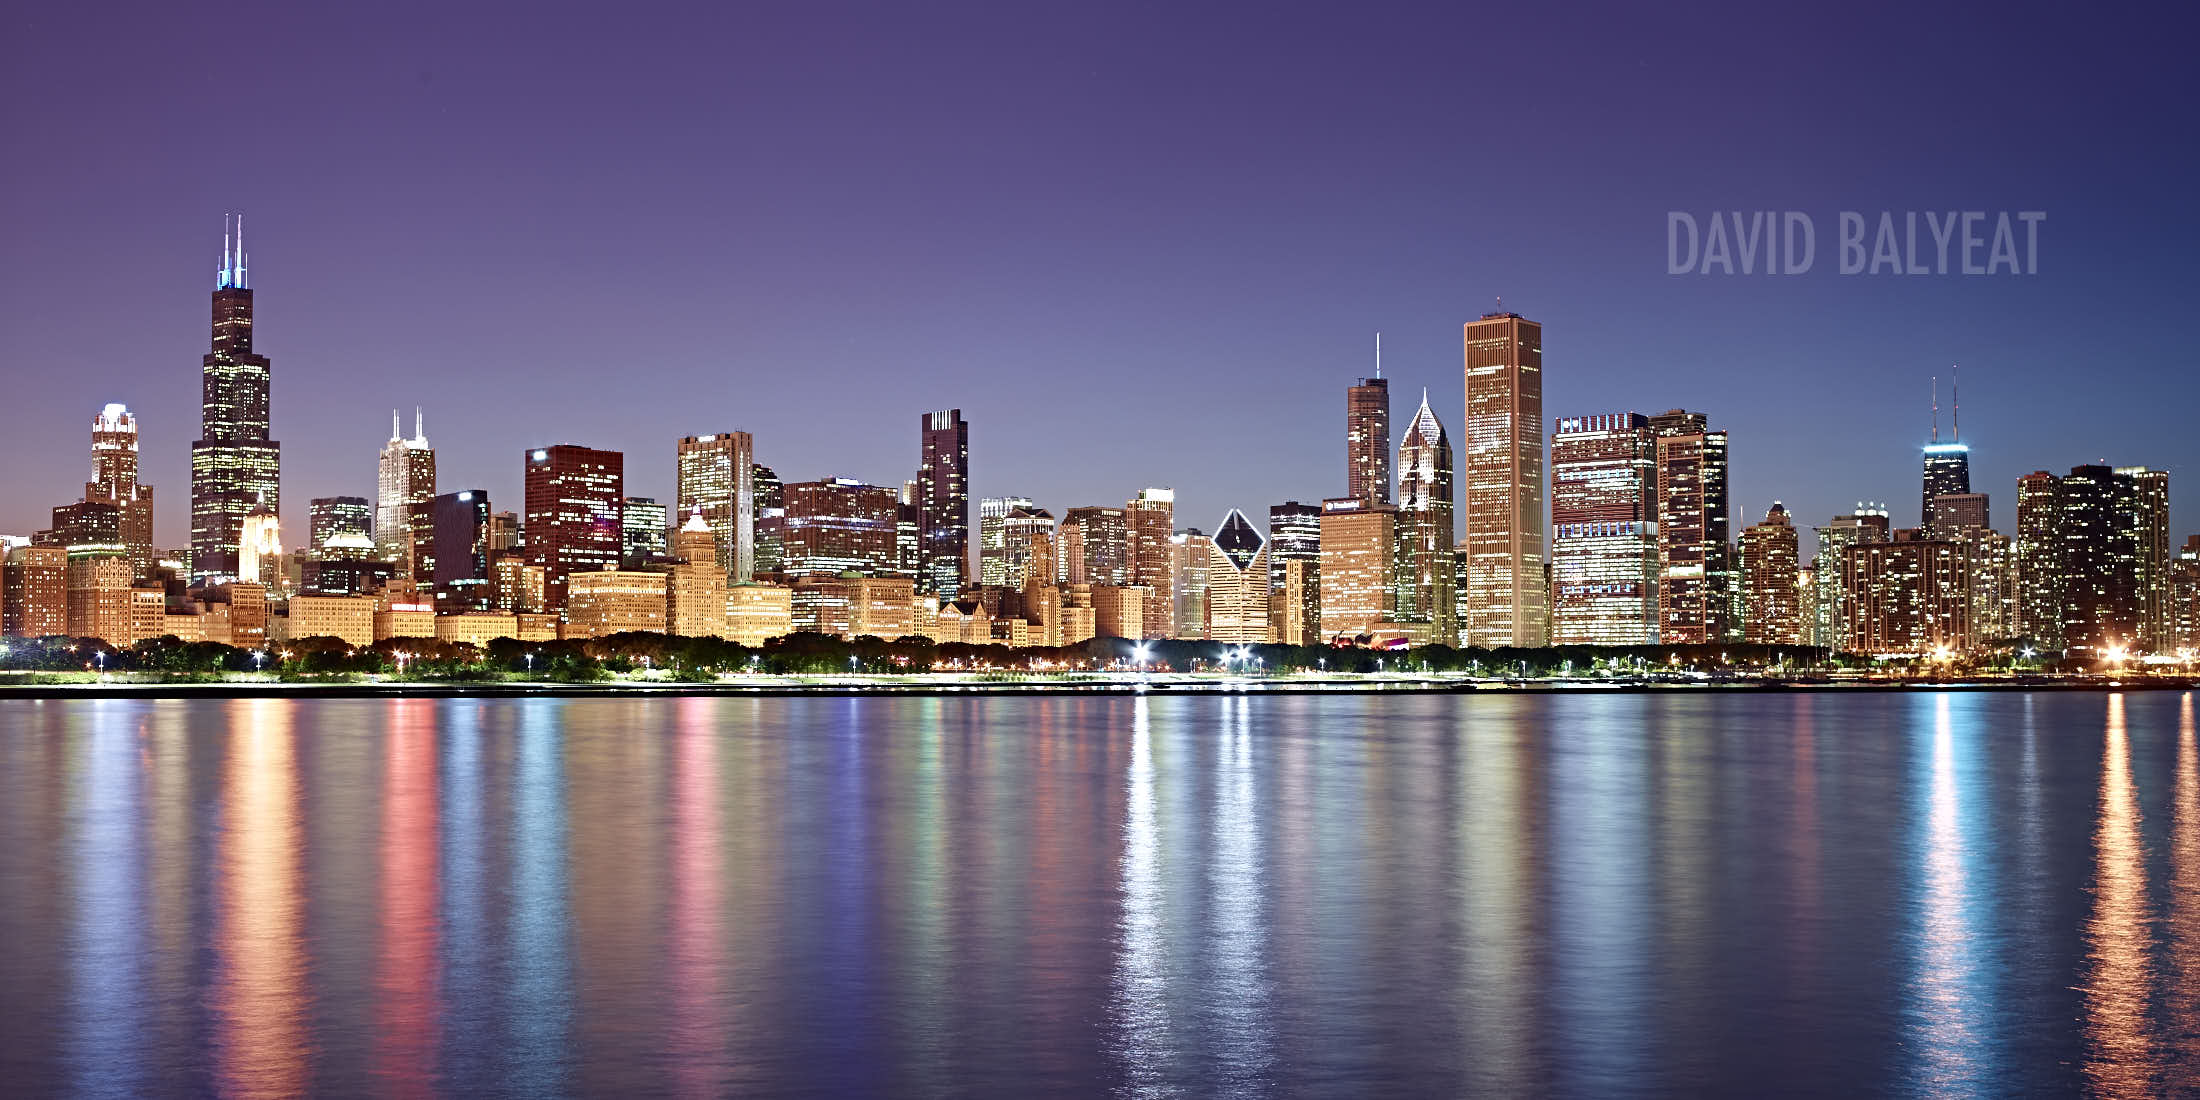 Chicago skyline reflections structural expressionism cityscape photography